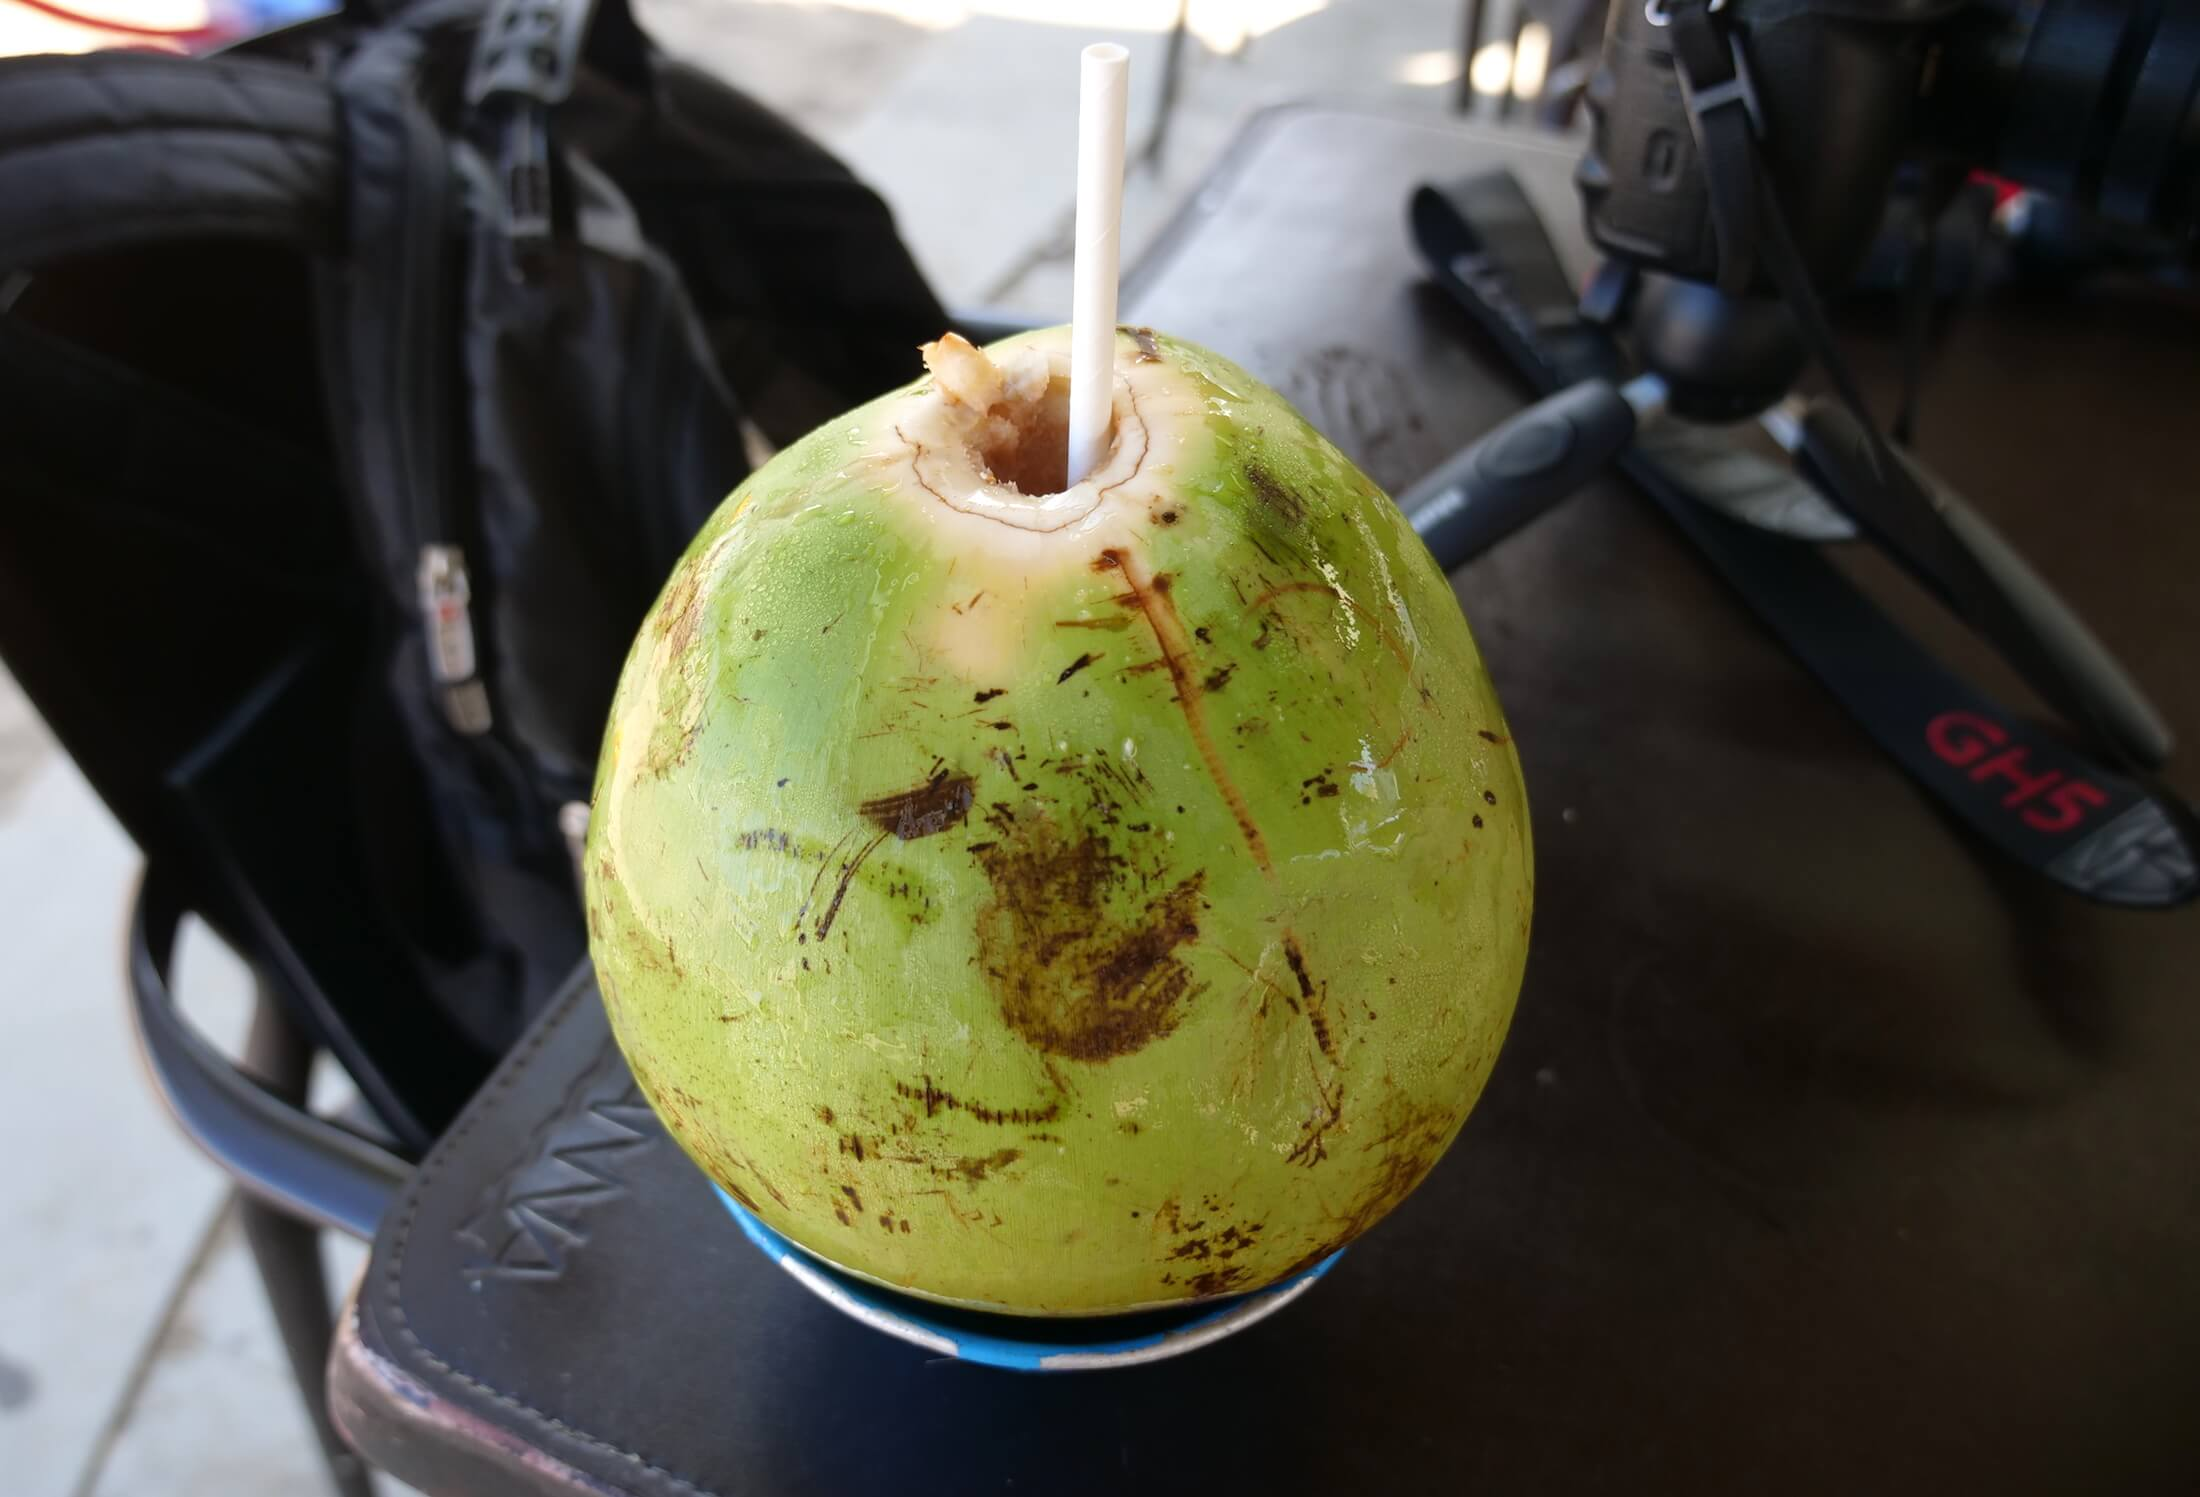 There is no better way to stay hydrated than with coconut water, and these usually cost about 6 or 7 reais on Ipanema beach